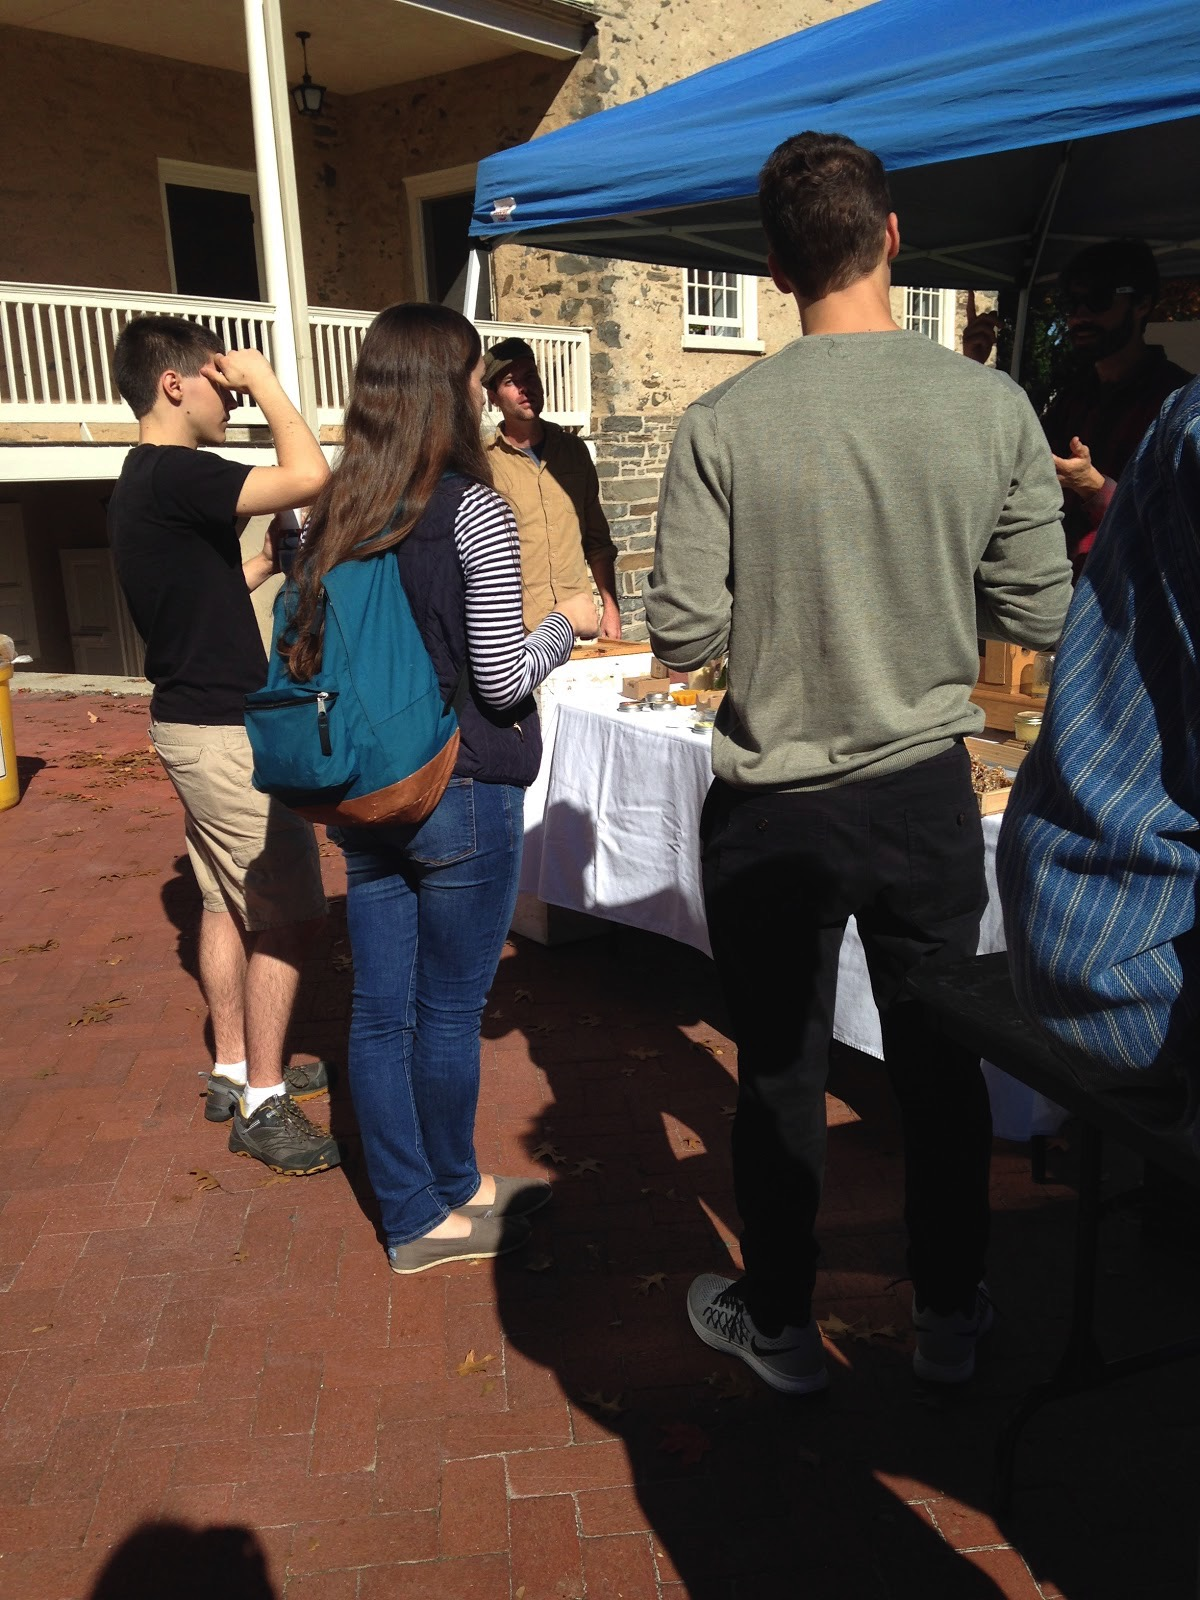 Students gathered around the Bee Boys table.